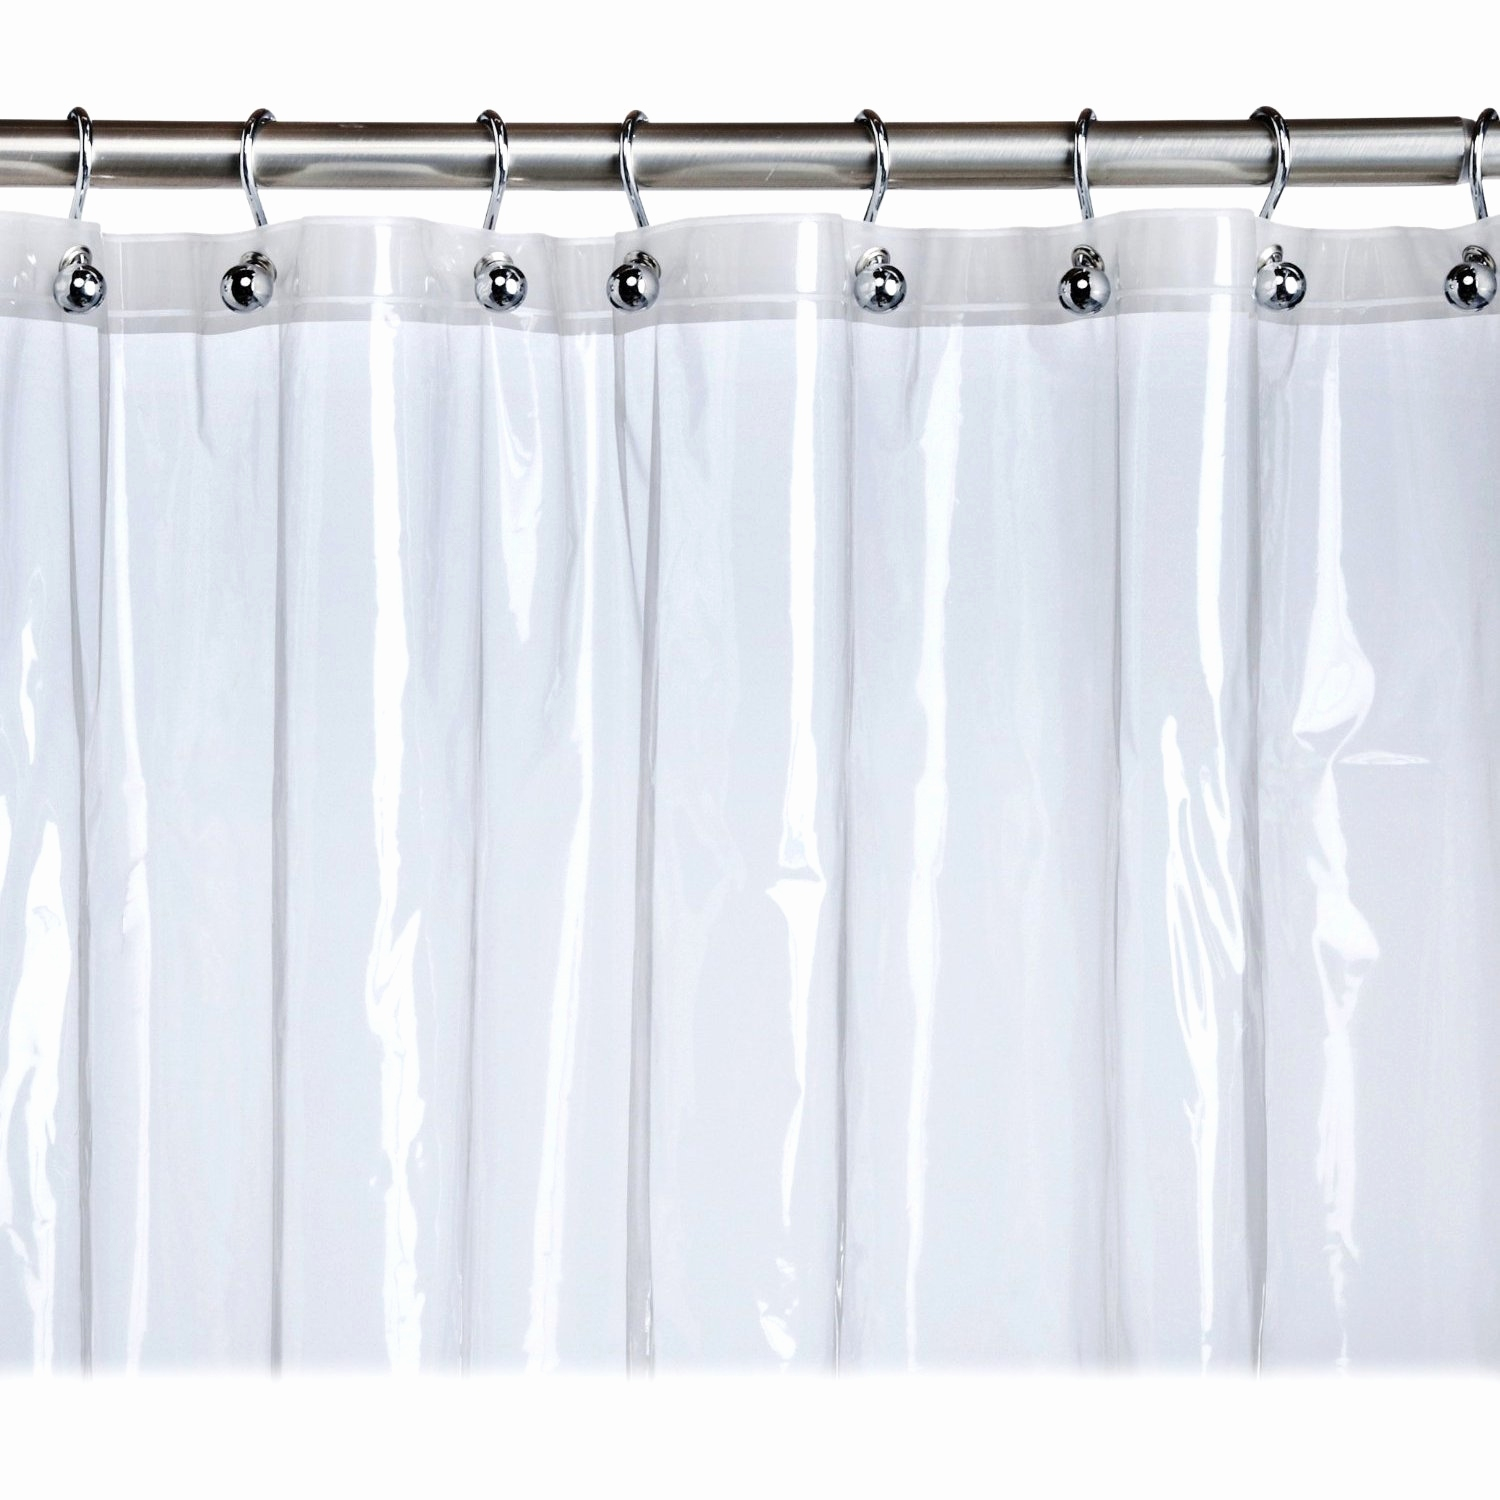 Organic Bamboo Shower Curtain Liner • Shower Curtains Ideas